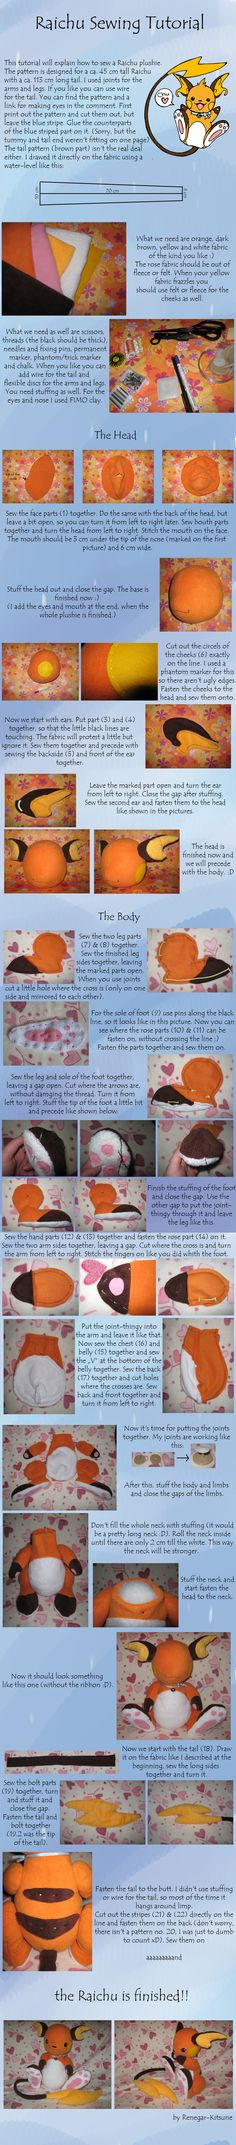 Raichu Sewing Tutorial by *Renegar-Kitsune on deviantART